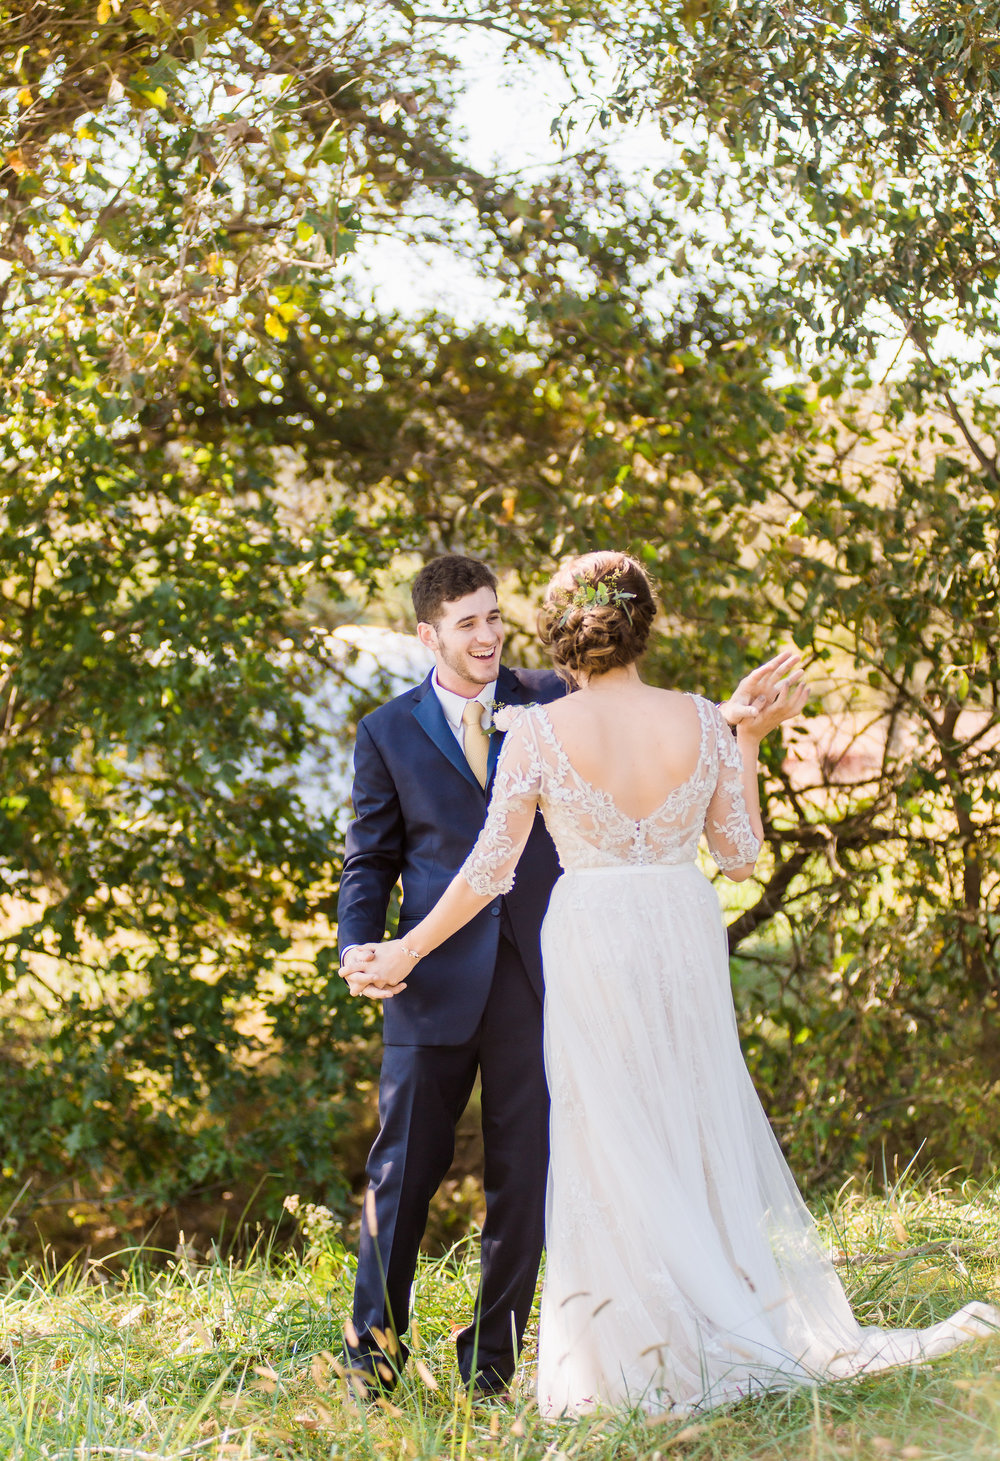 MissouriRusticWedding_StLouisWeddingPhotographer_AliciaDan_CatherineRhodesPhotography-1292-Edit.jpg